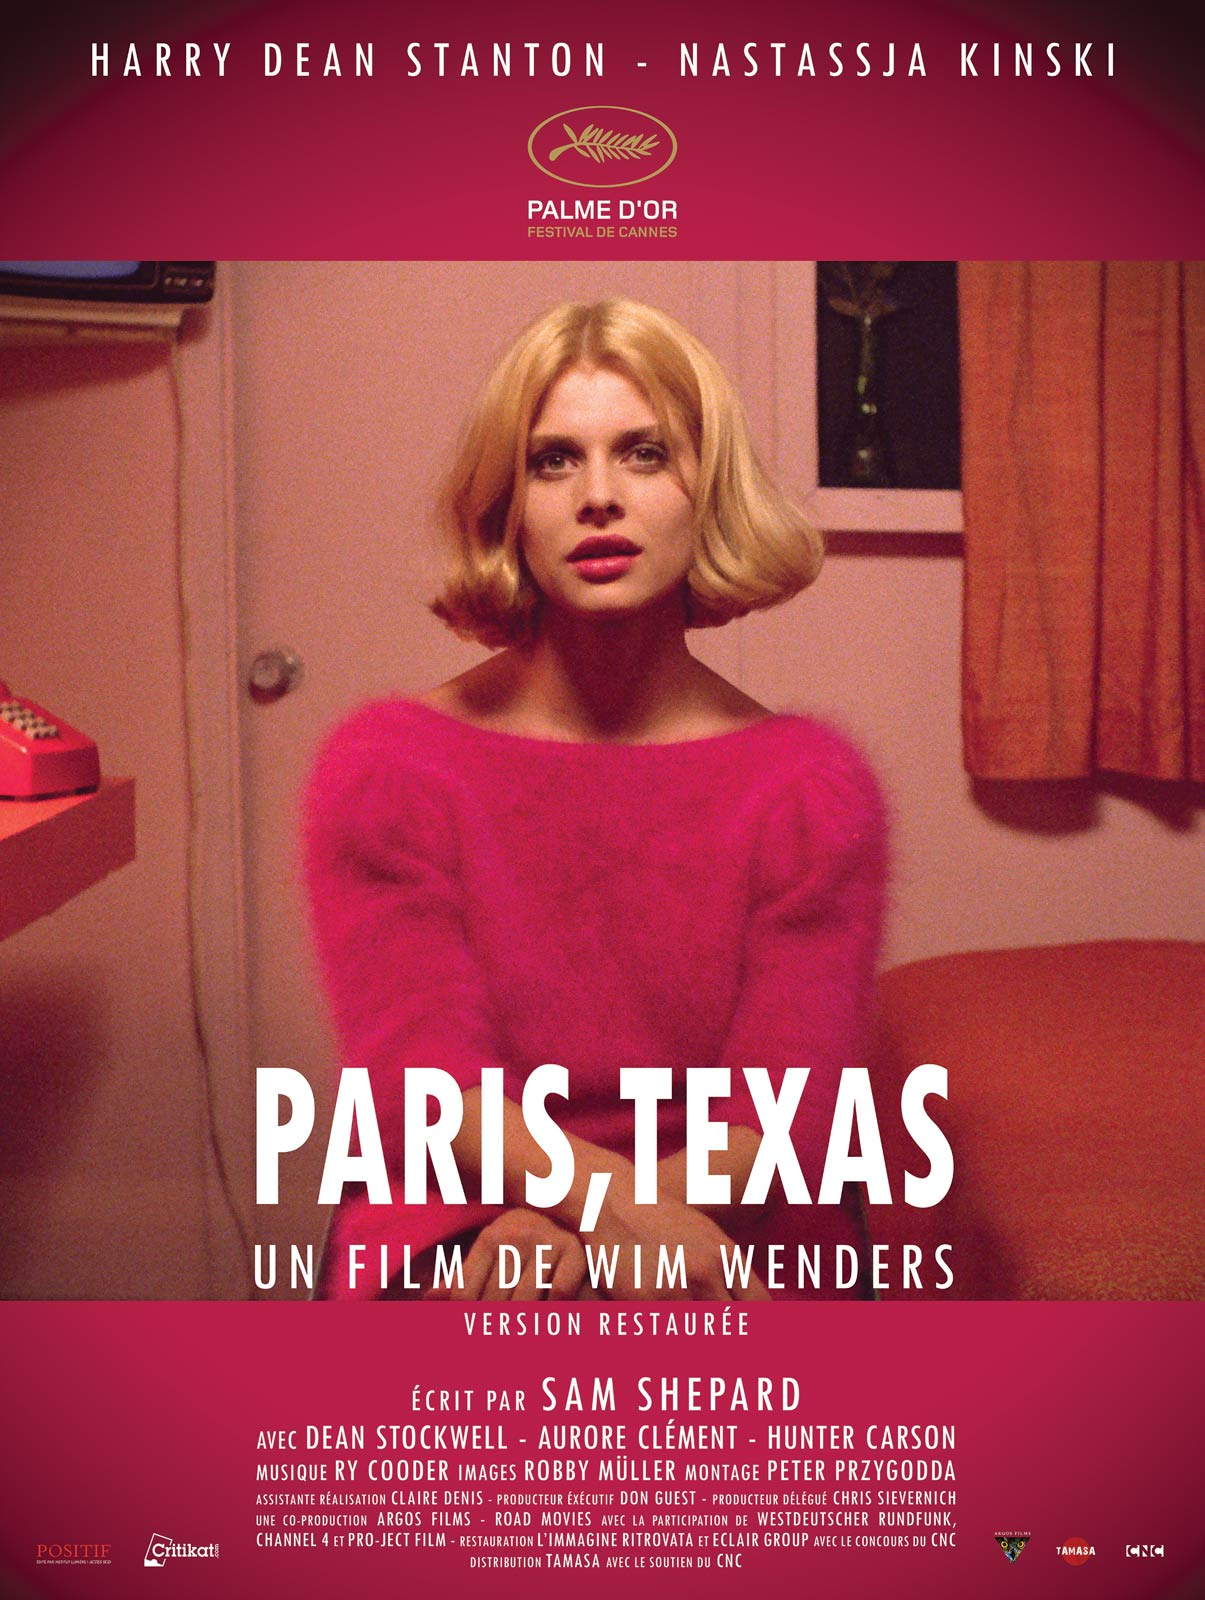 Paris, Texas no Theatro Circo em Braga